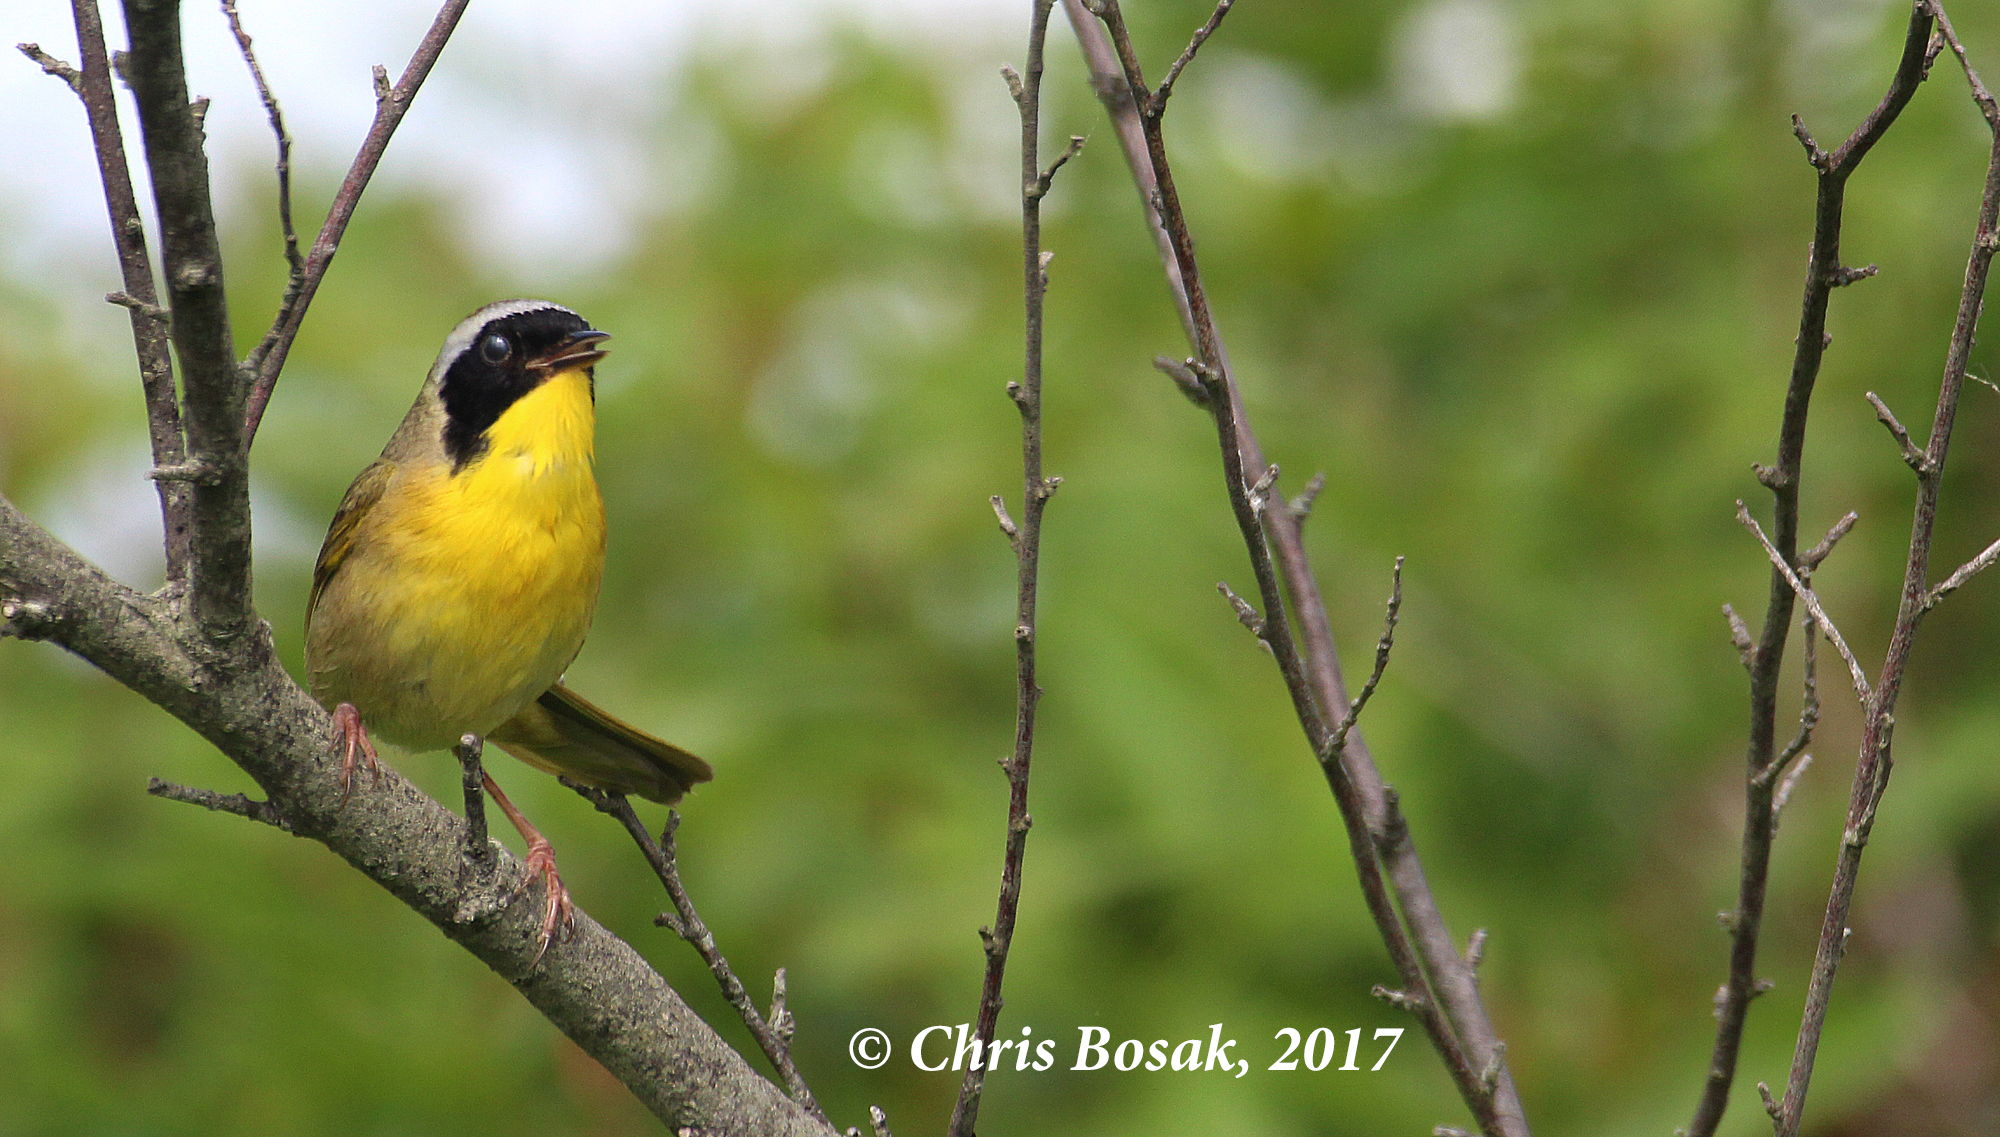 Photo by Chris Bosak A common yellowthroat sings from a perch in Brookfield, Conn., during spring 2017.